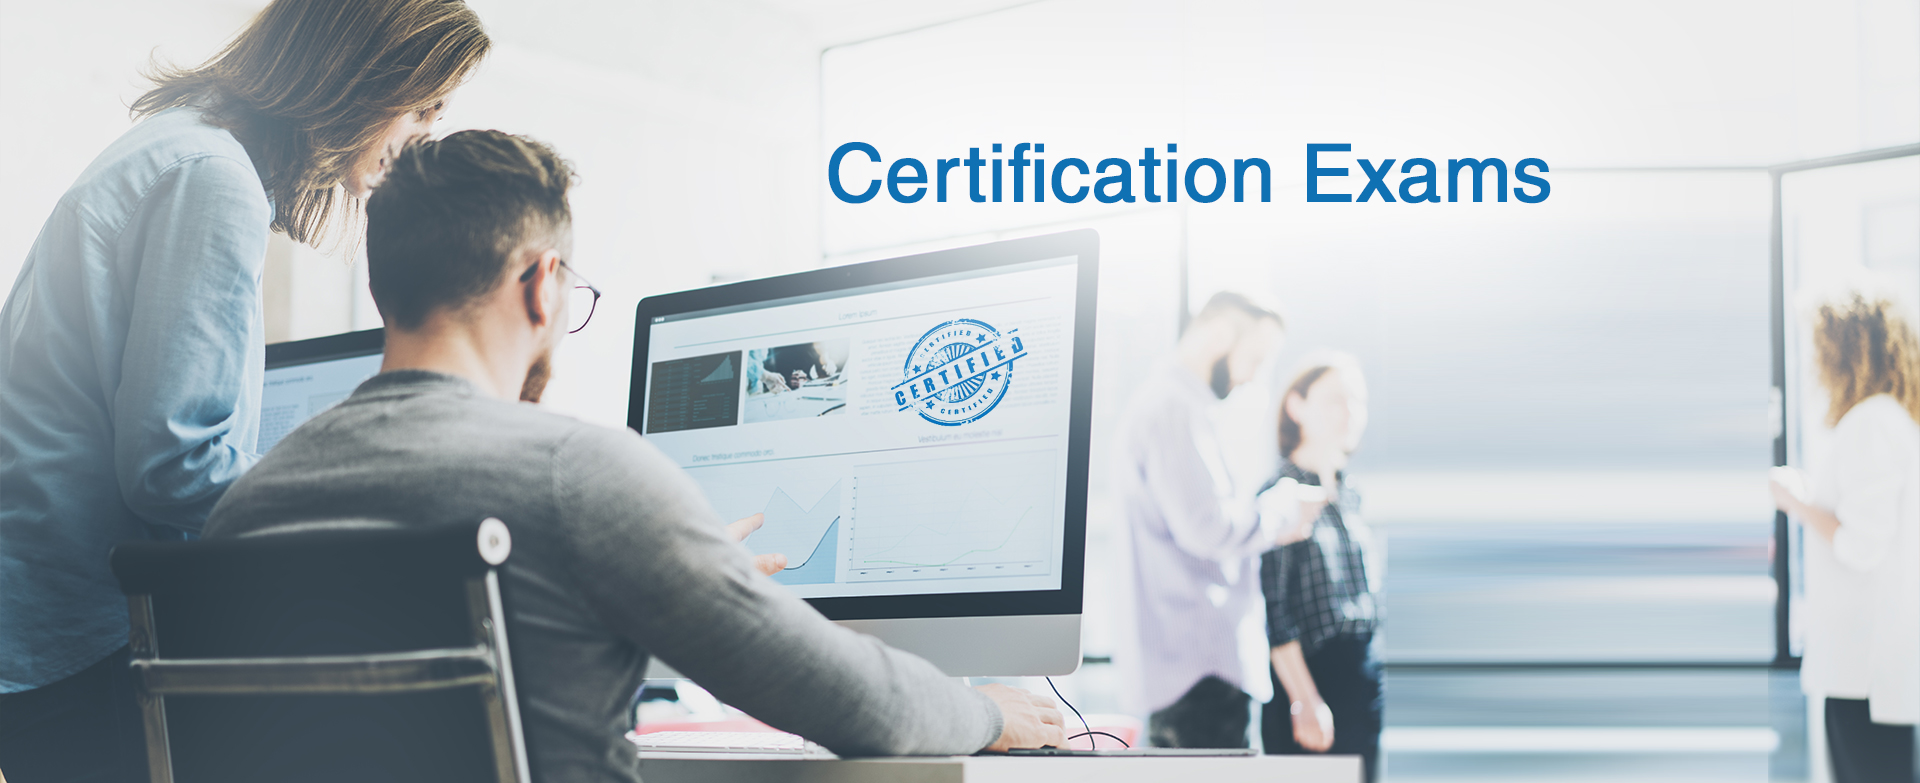 Certification Exams oracle fusion applications